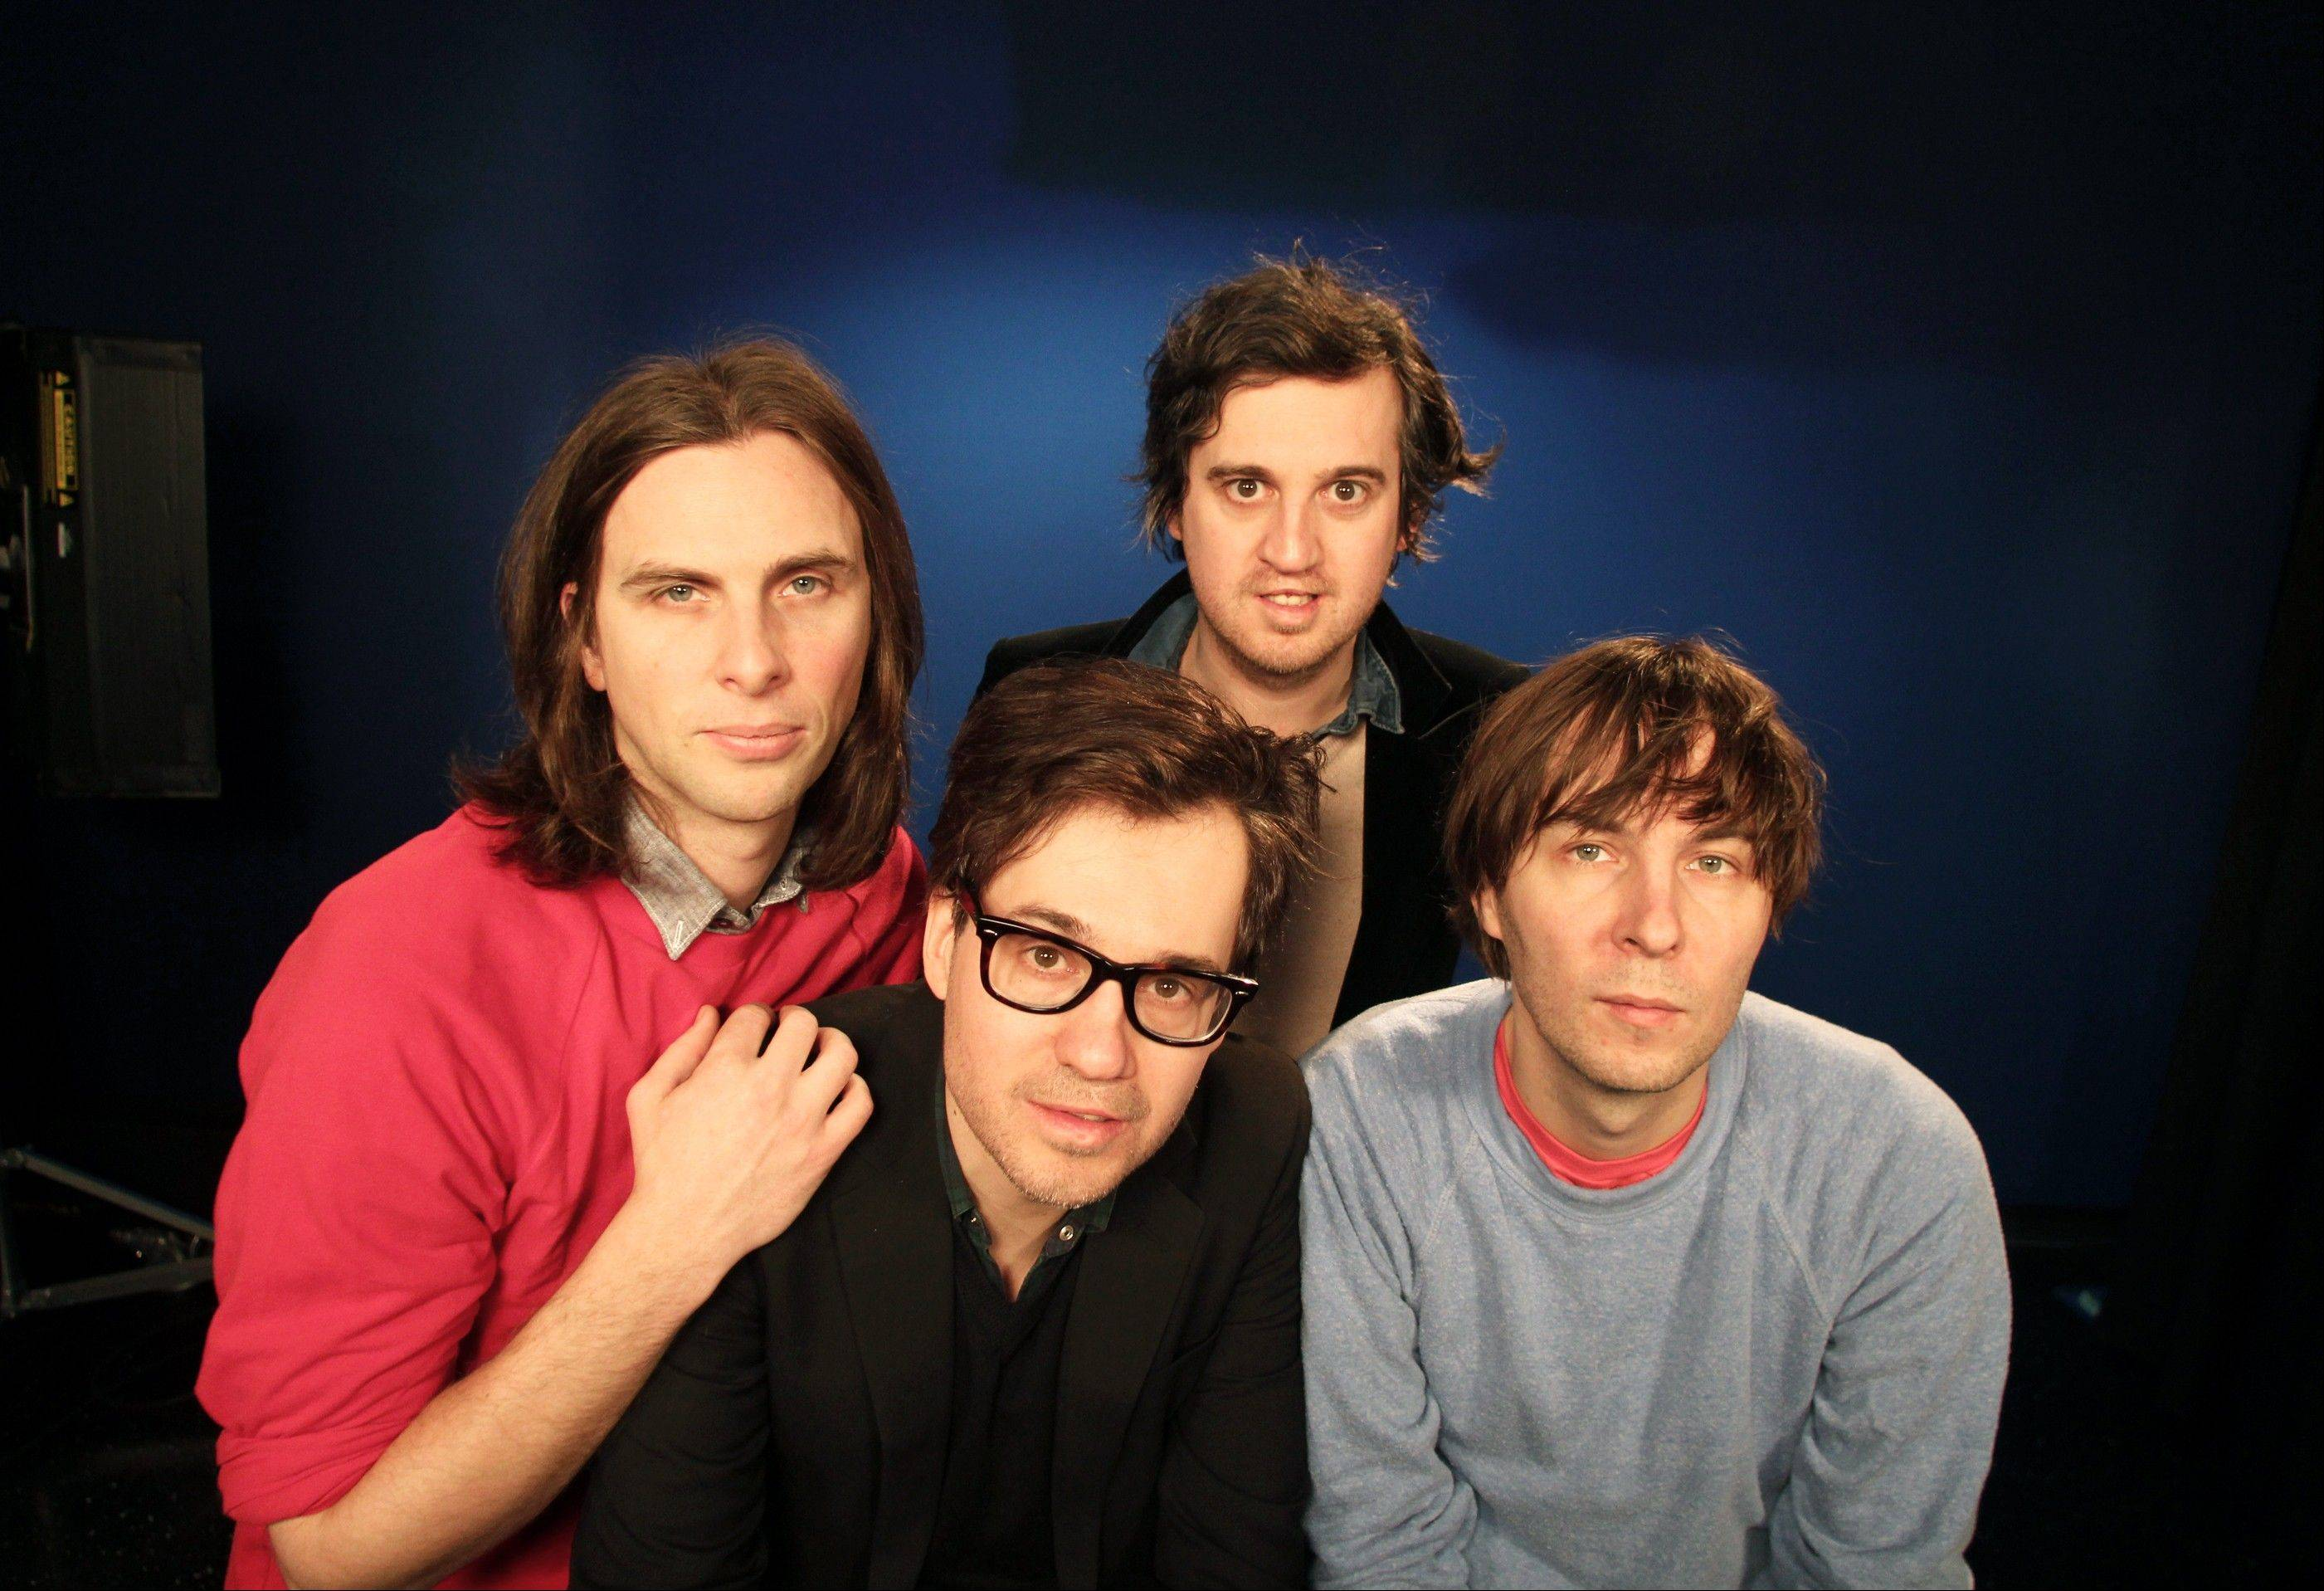 Members of the band Phoenix, from left, Deck D�arcy, Laurent Brancowitz, Christian Mazzalai and Thomas Mars, pose in New York. Phoenix frontman Thomas Mars said their new album, �Bankrupt!,� was born out of the negative influences going on in the band after the unprecedented success of their Grammy-winning 2009 album, �Wolfgang Amadeus Phoenix.�